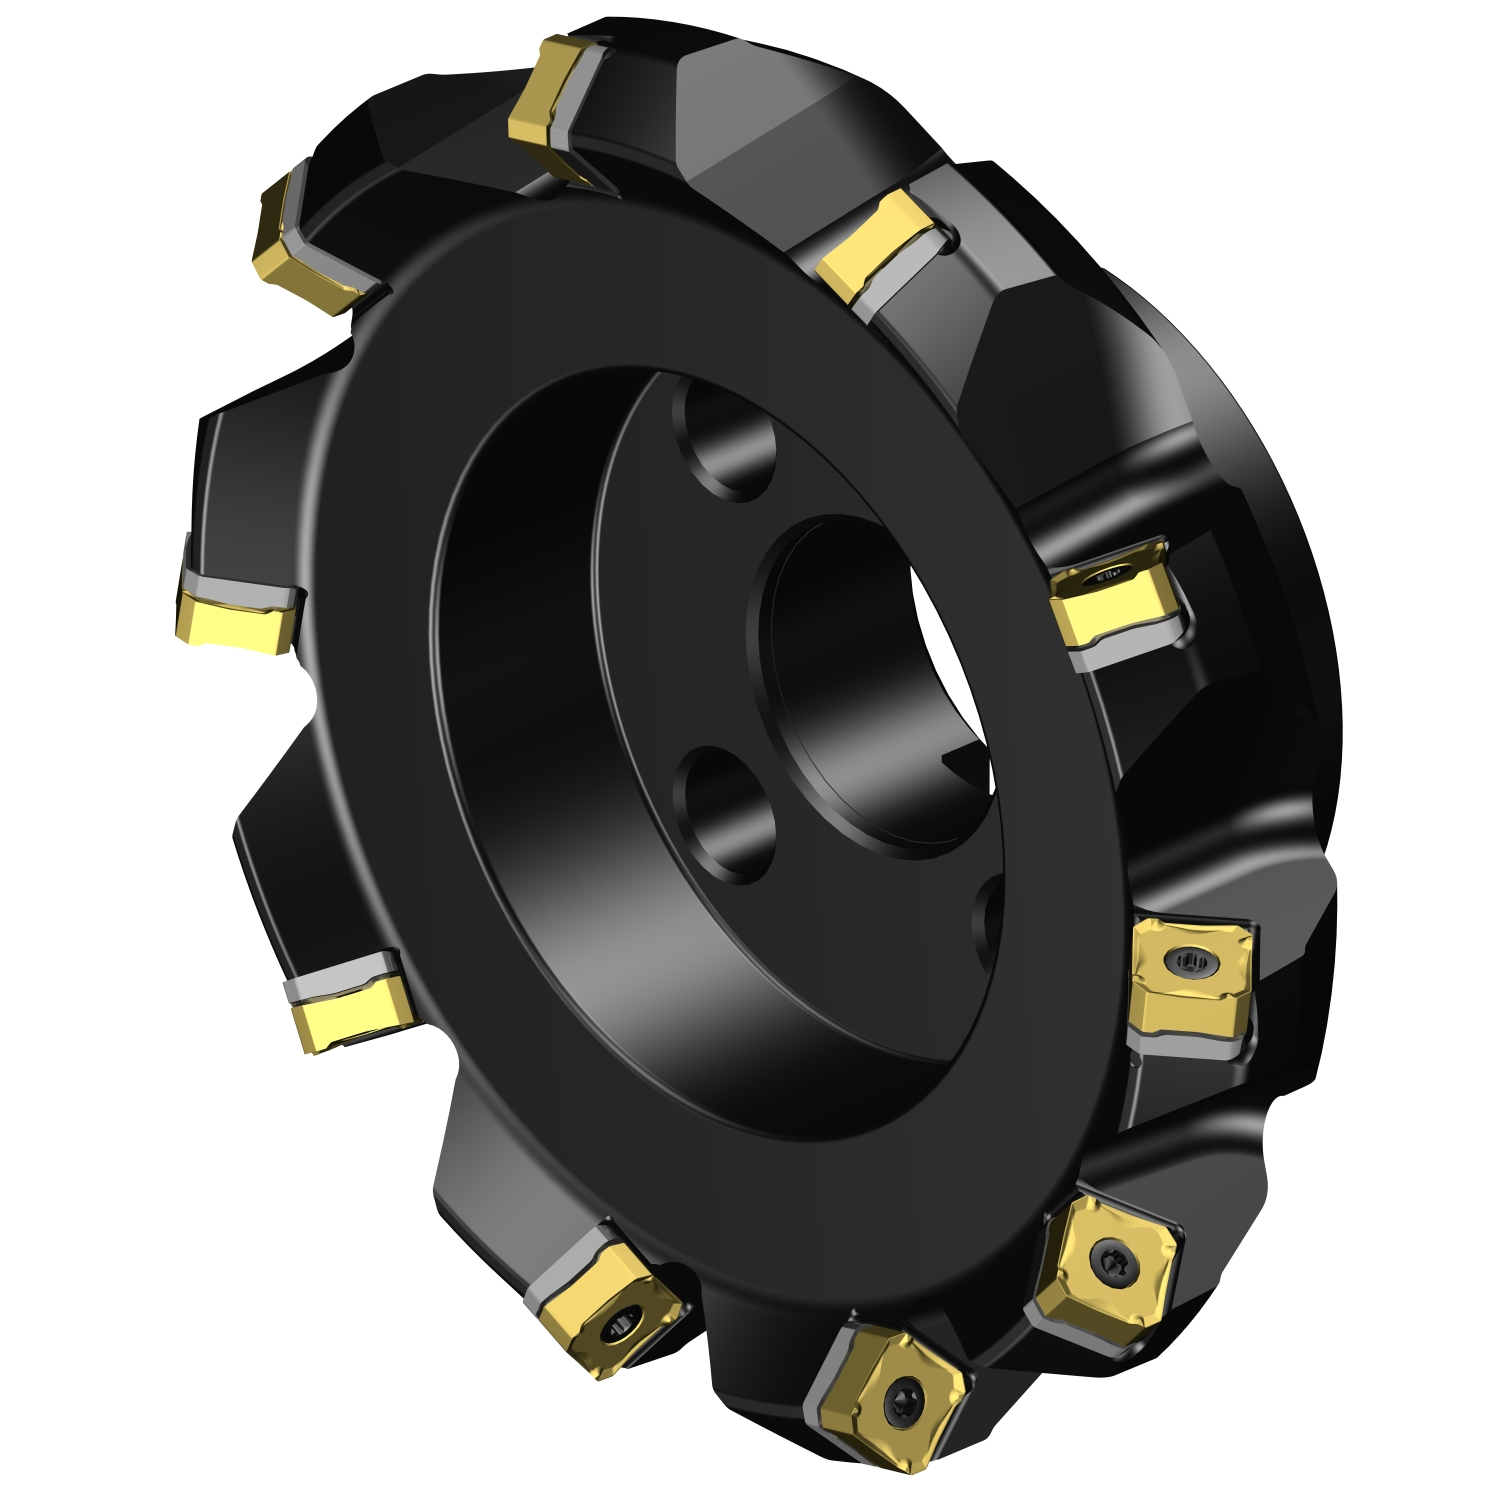 A345-152R38-13M - Holders, Adapters & Heads